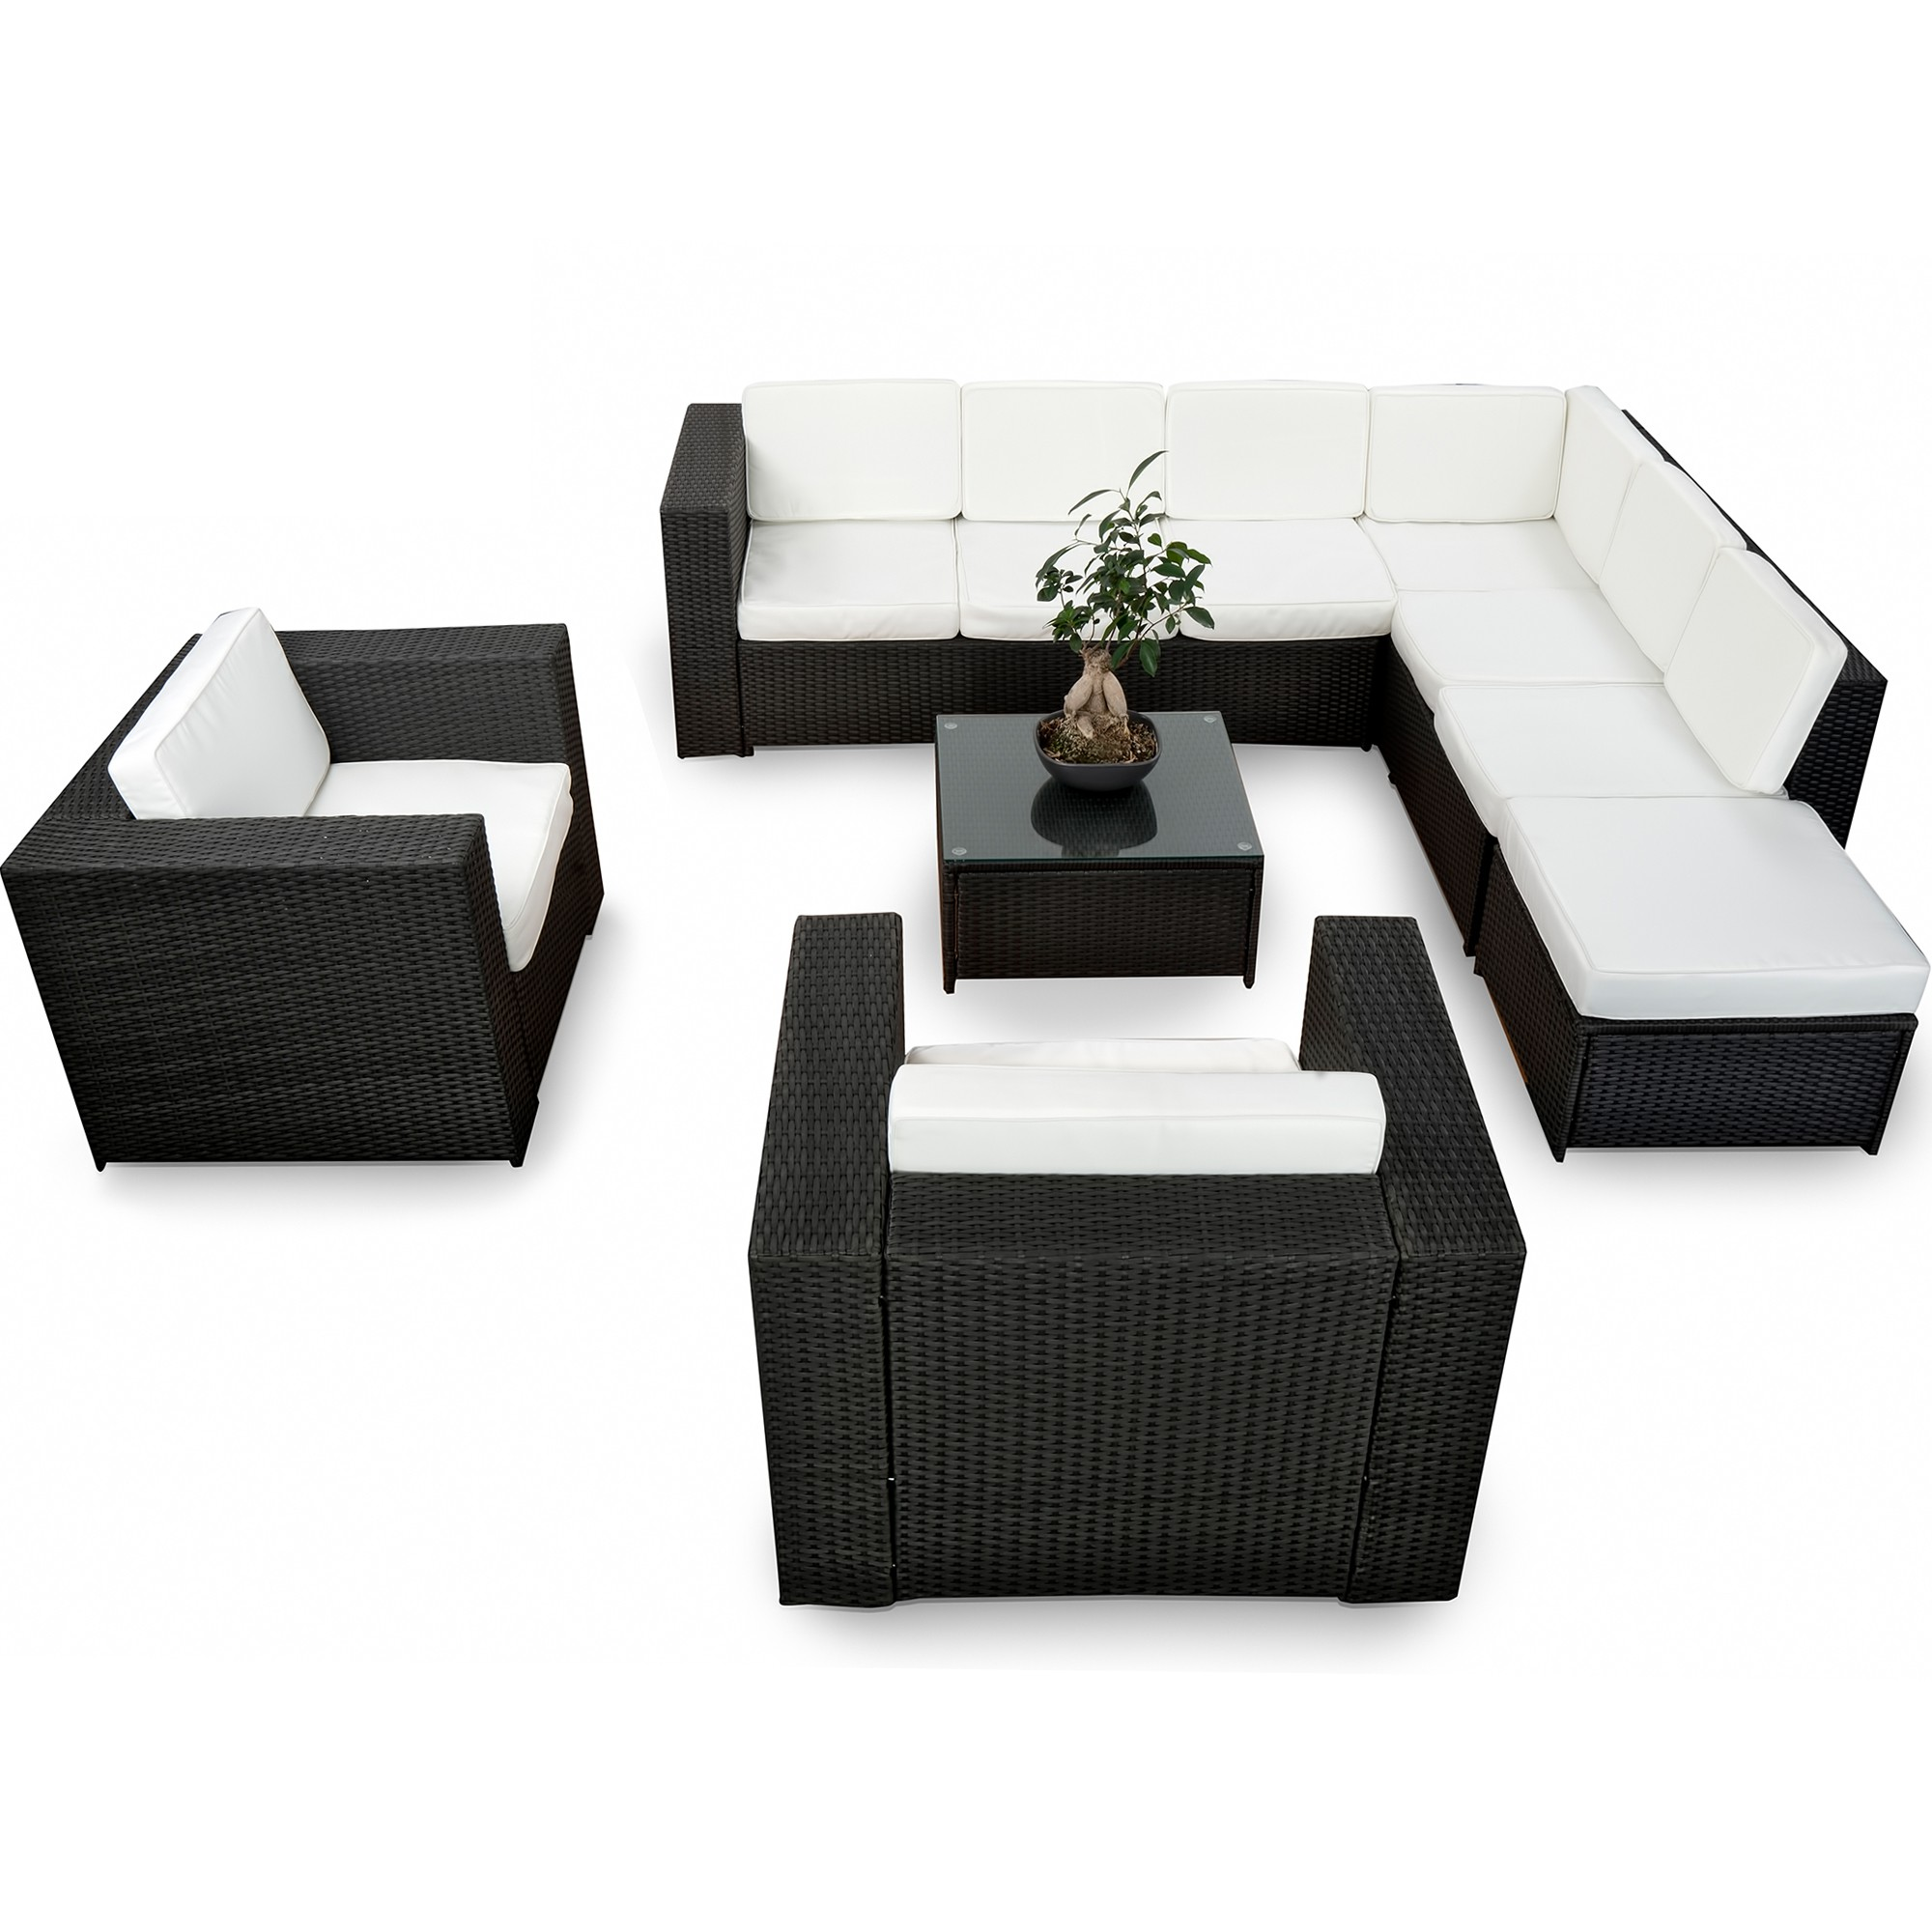 garten lounge set g nstig lounge set garten kaufen. Black Bedroom Furniture Sets. Home Design Ideas